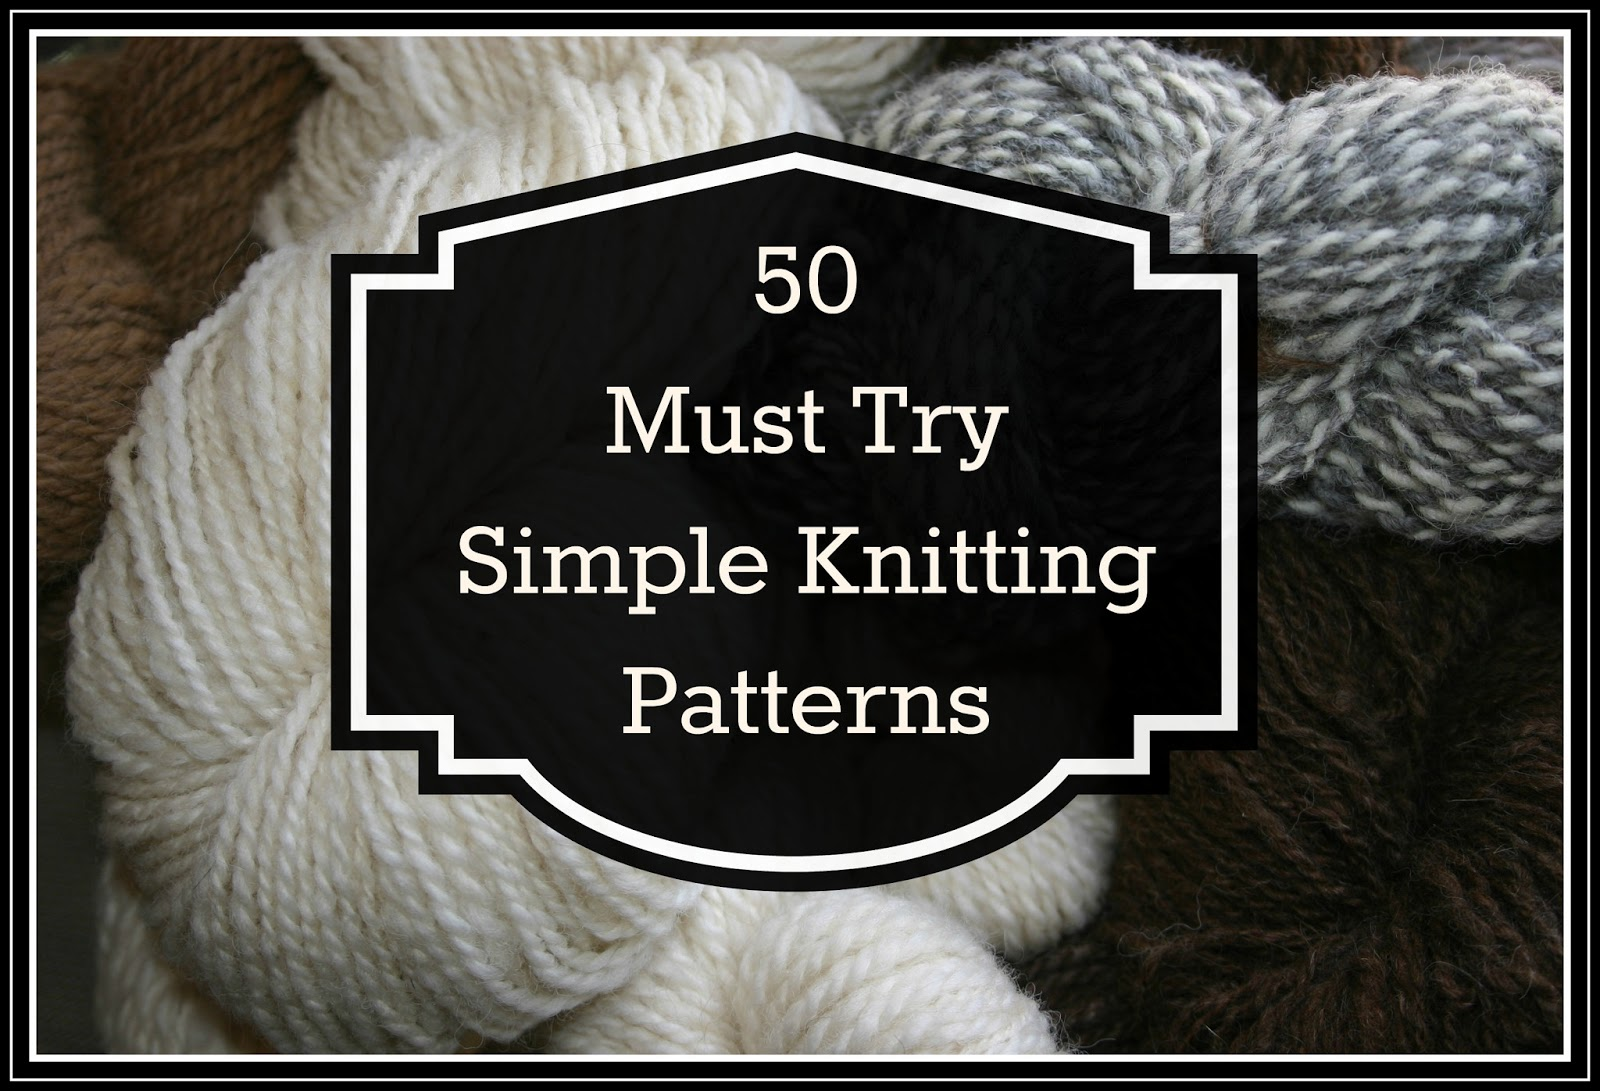 Simple Knitting Patterns : 50 Must Try Simple Knitting Patterns - The Knit Wit by Shair